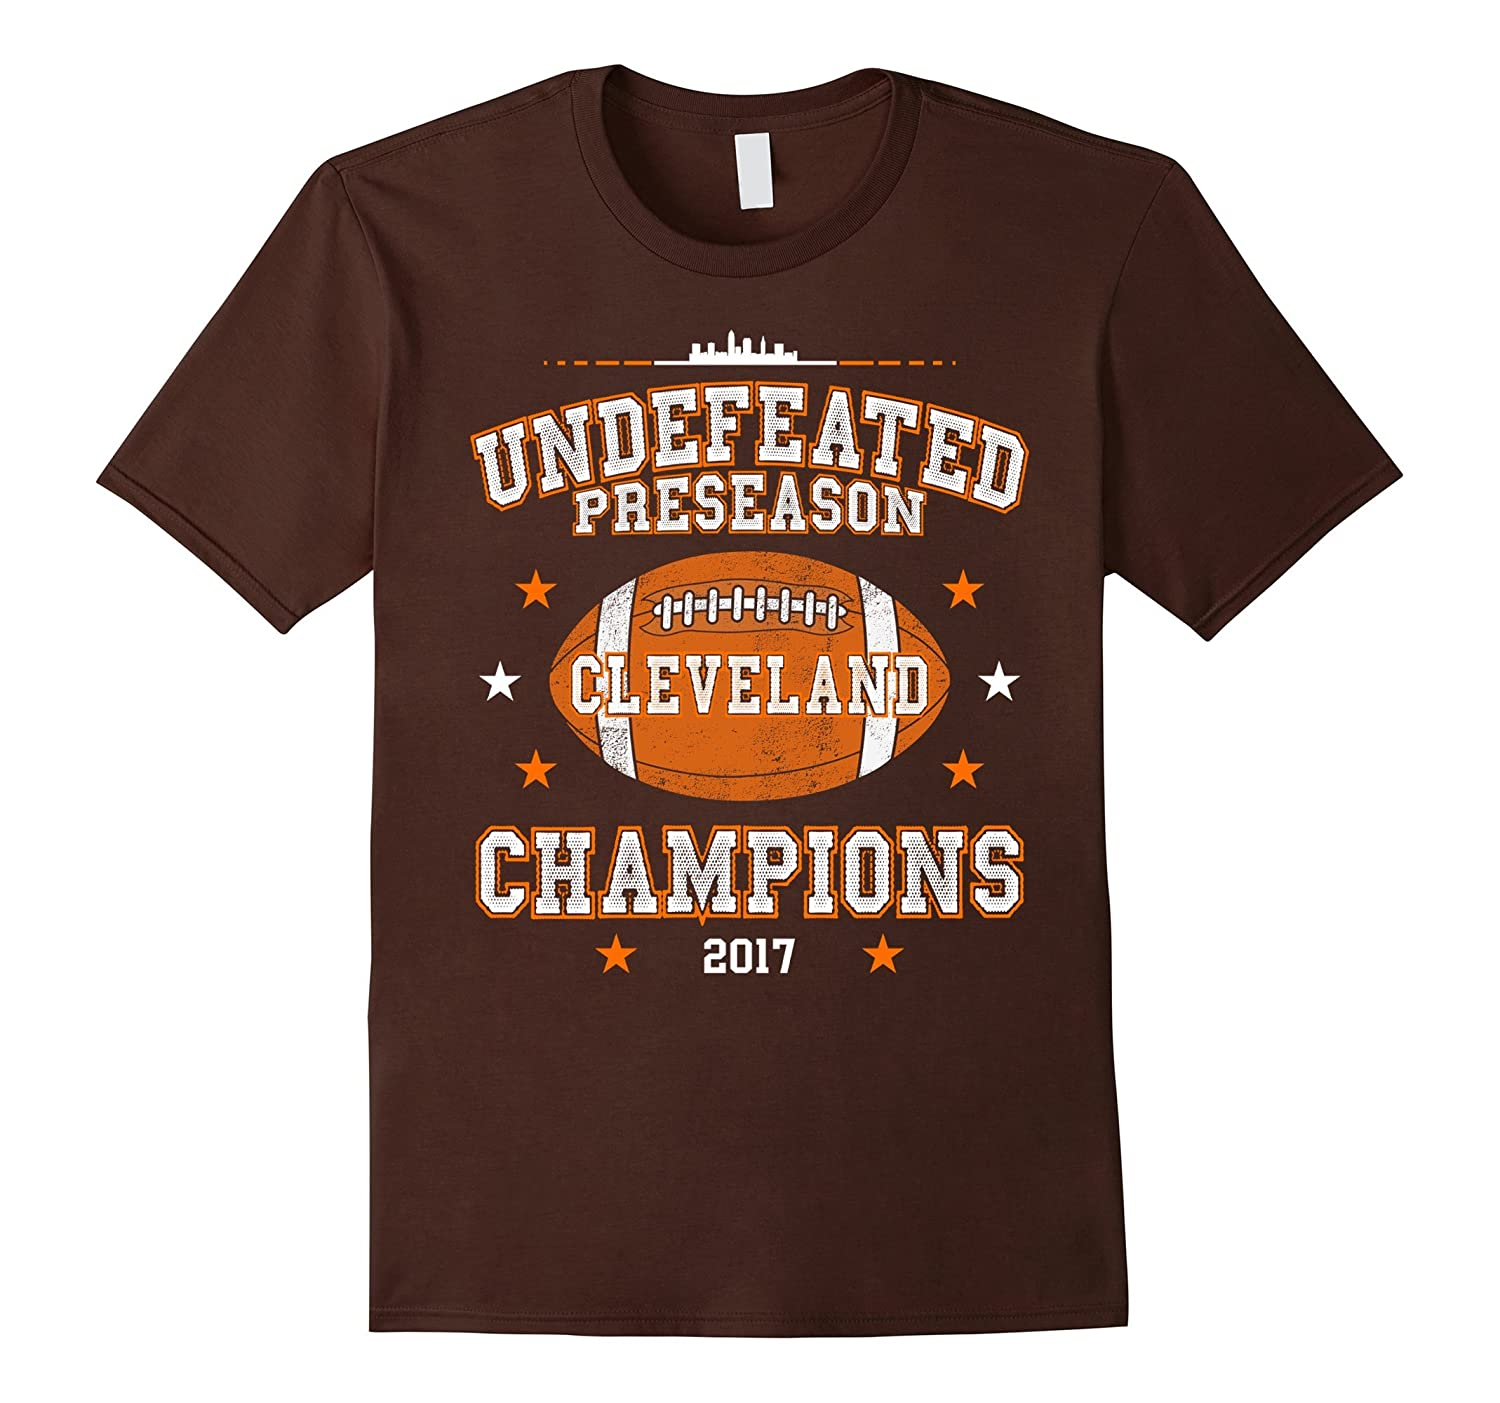 Undefeated Preseason Champions 2017 Cleveland T-Shirt-BN